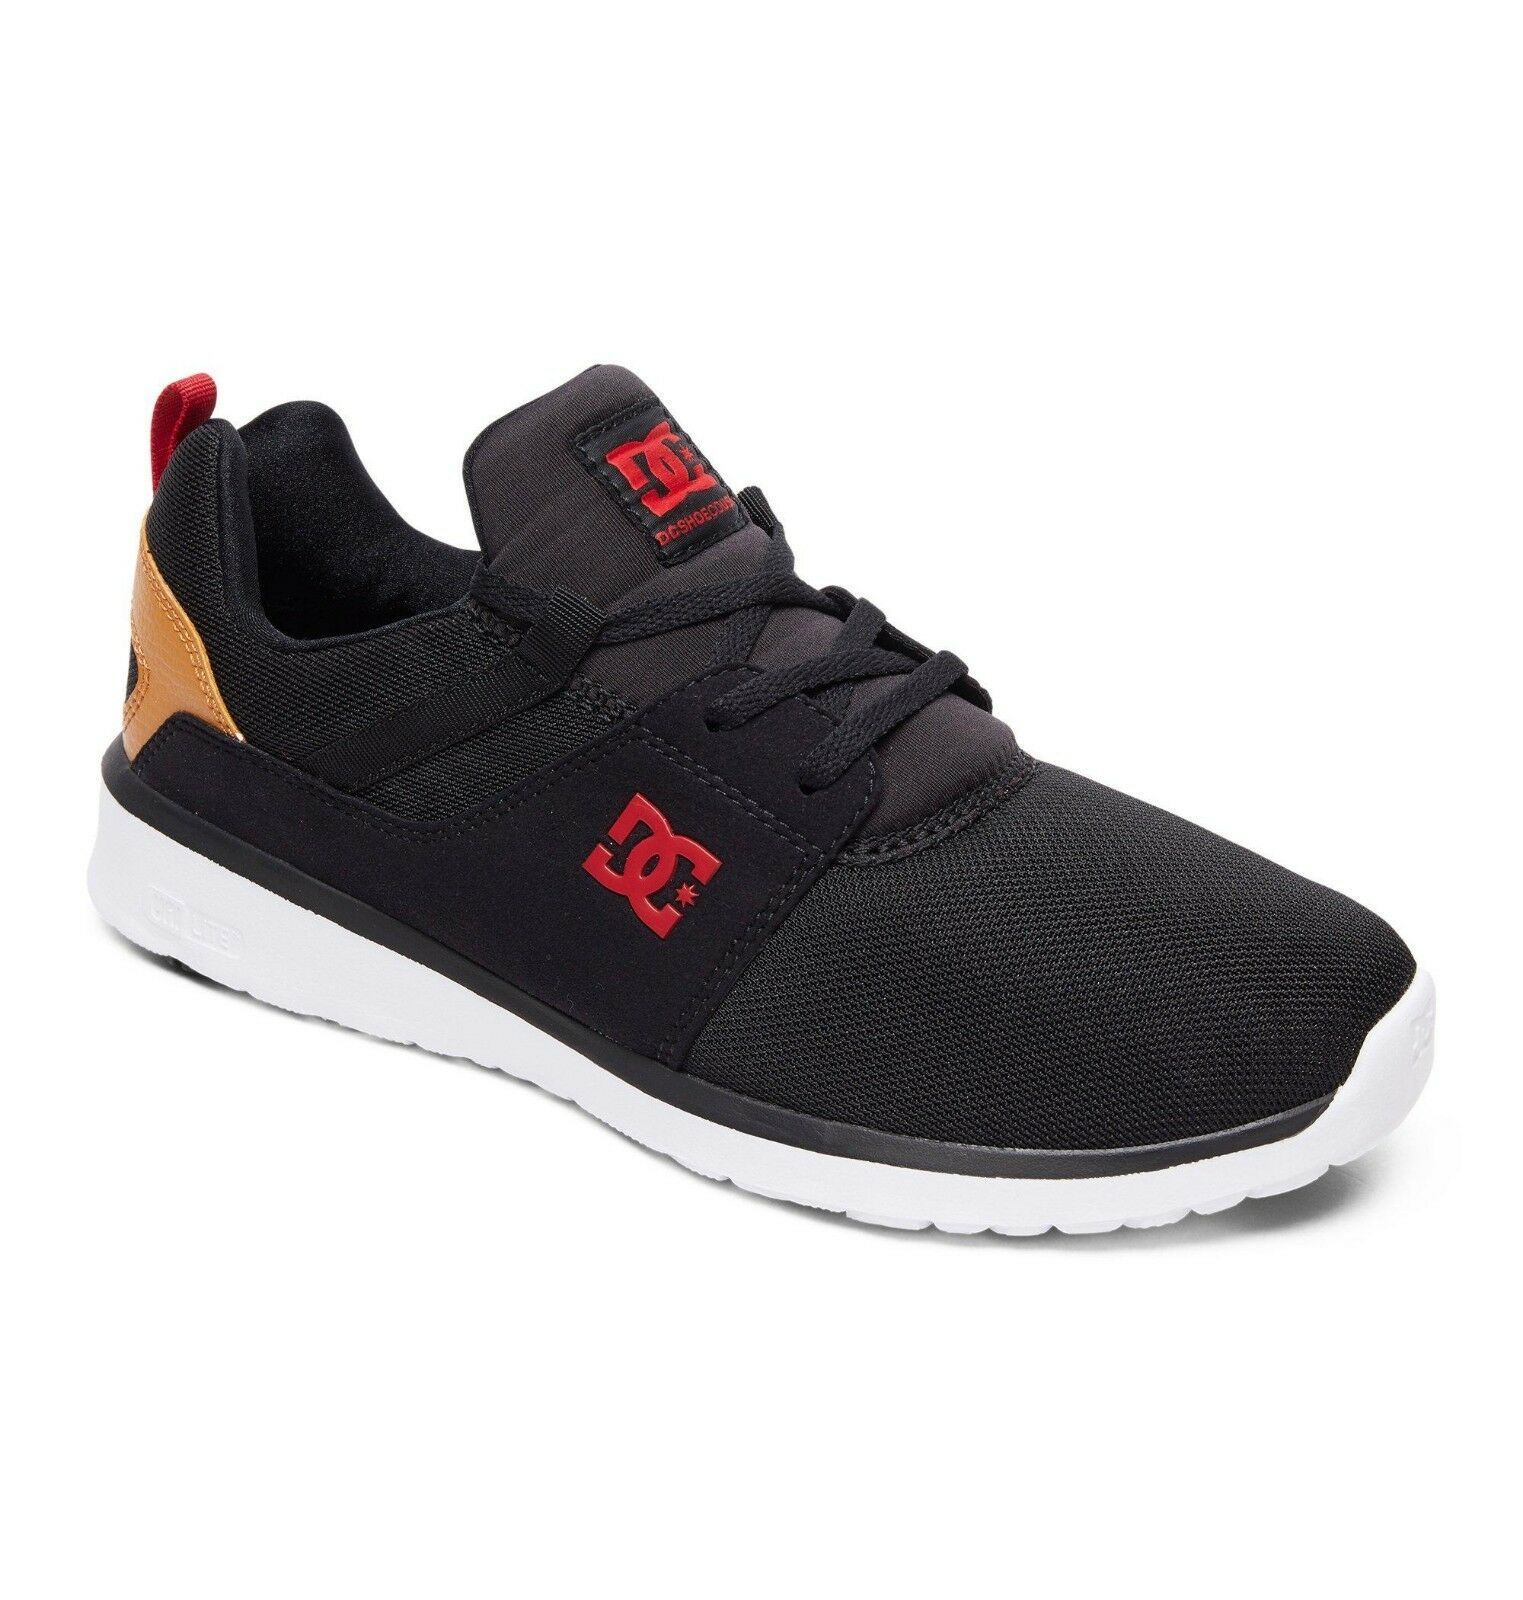 DC SHoeS Baskets Noir homme. Heathrow Ortholite Noir Baskets Athlétique Chaussures De Skate 8 W 71 BC1 b52f0d